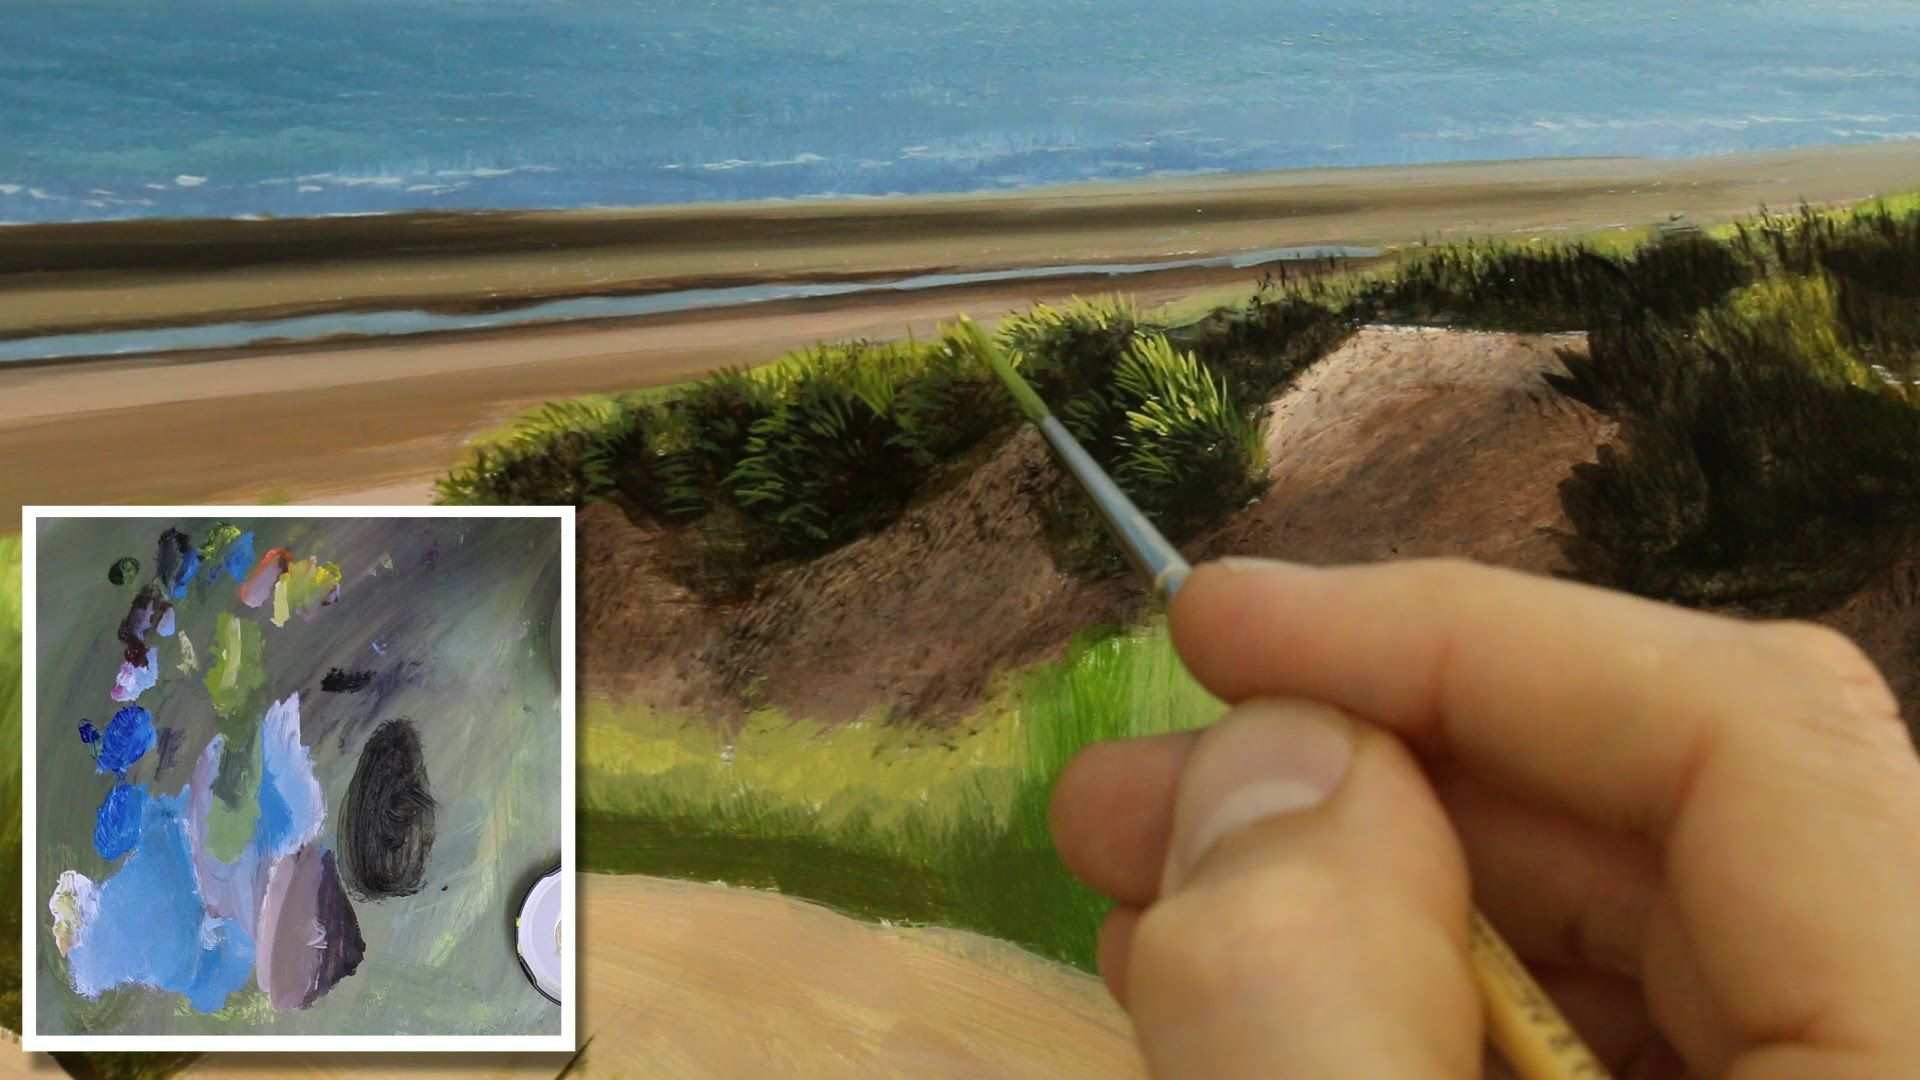 Pittura Ad Olio Tutorial 39 How To Paint A Beach Seascape Oil Painting Tutorial Pittura